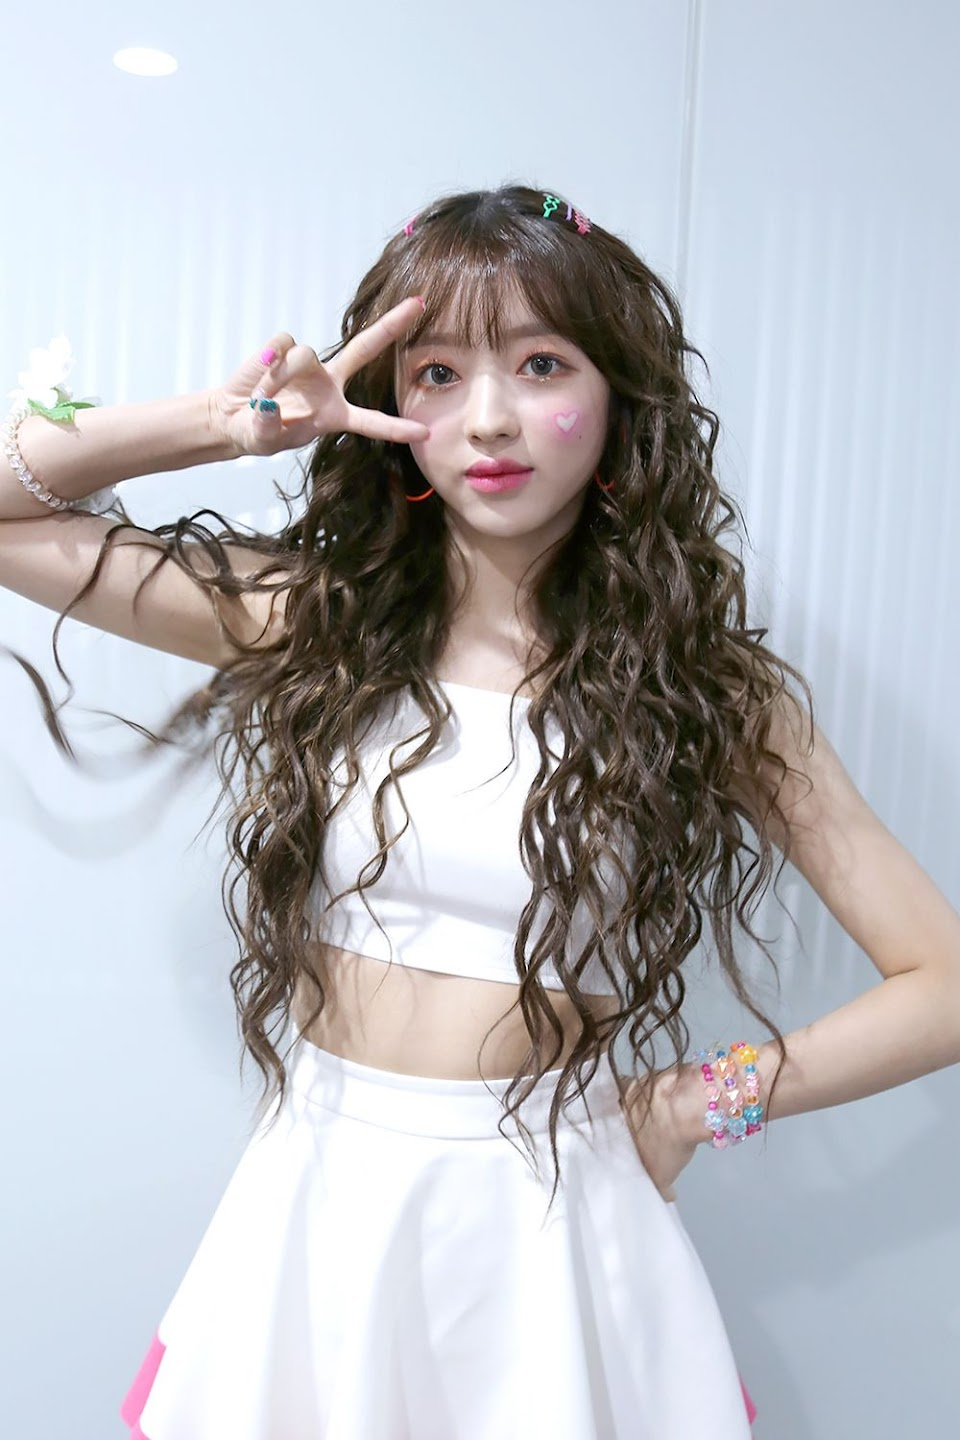 yooa stage 46